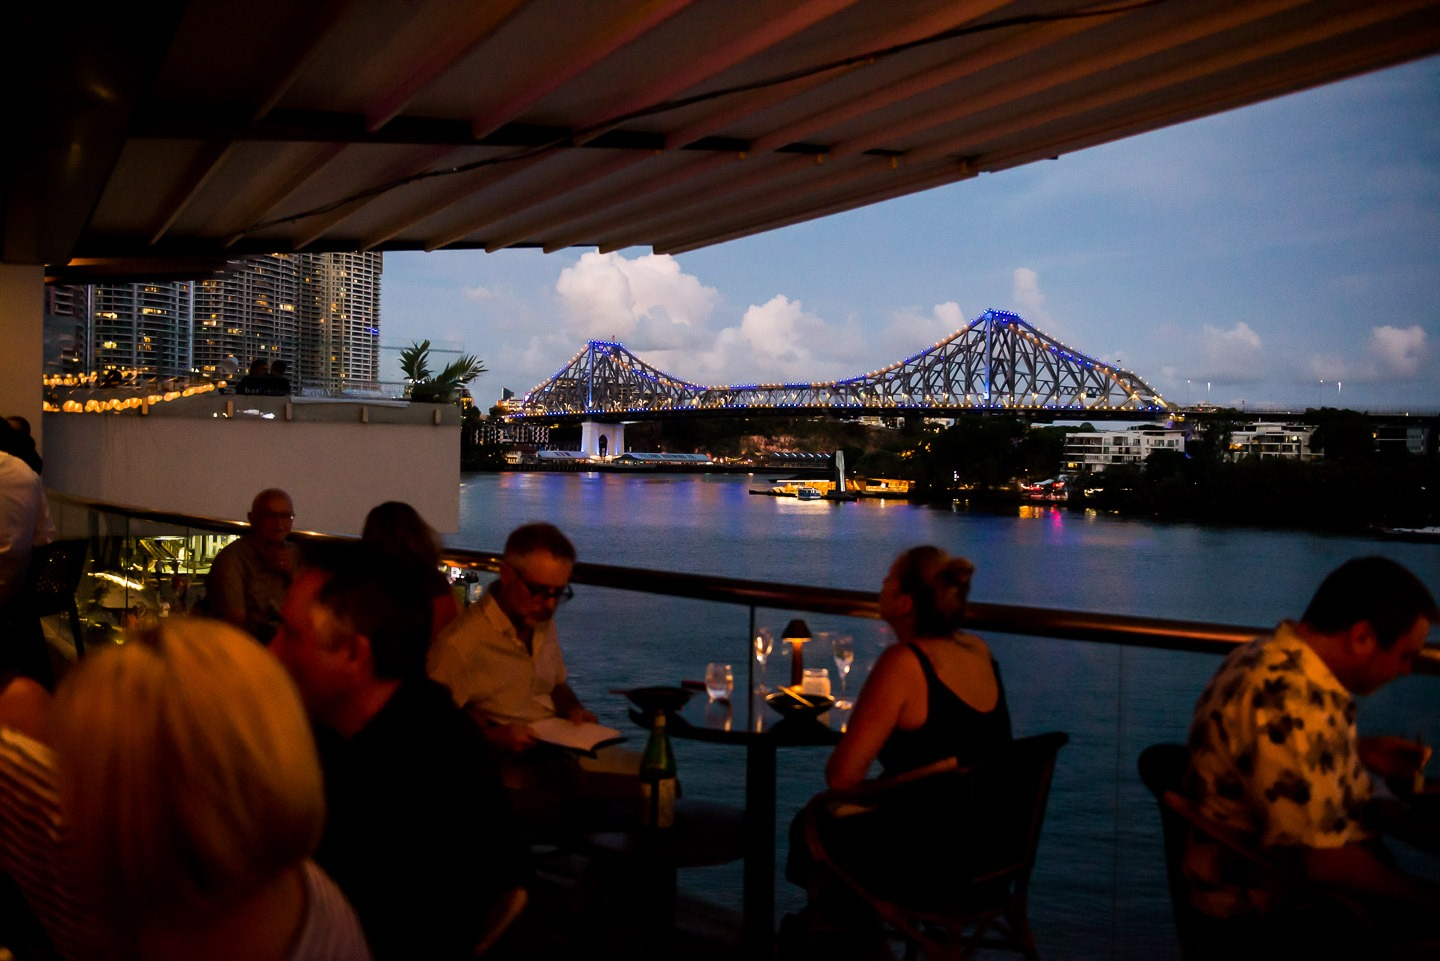 Drinks at sunset looking toward the Story Bridge.